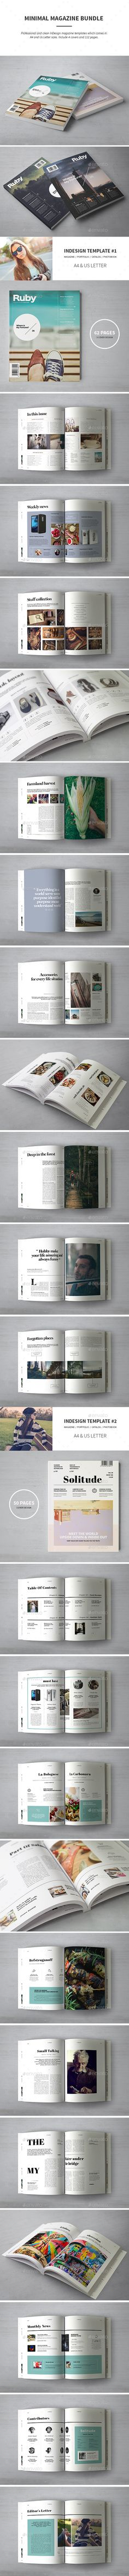 Magazine Bundle: Professional and clean InDesign magazine templates. Includes 4 covers and 112 pages for articles, interviews, gal Foto Magazine, Print Magazine, Layout Design, Print Design, Graphic Design, Indesign Magazine Templates, Publication Design, Print Templates, Product Catalogue